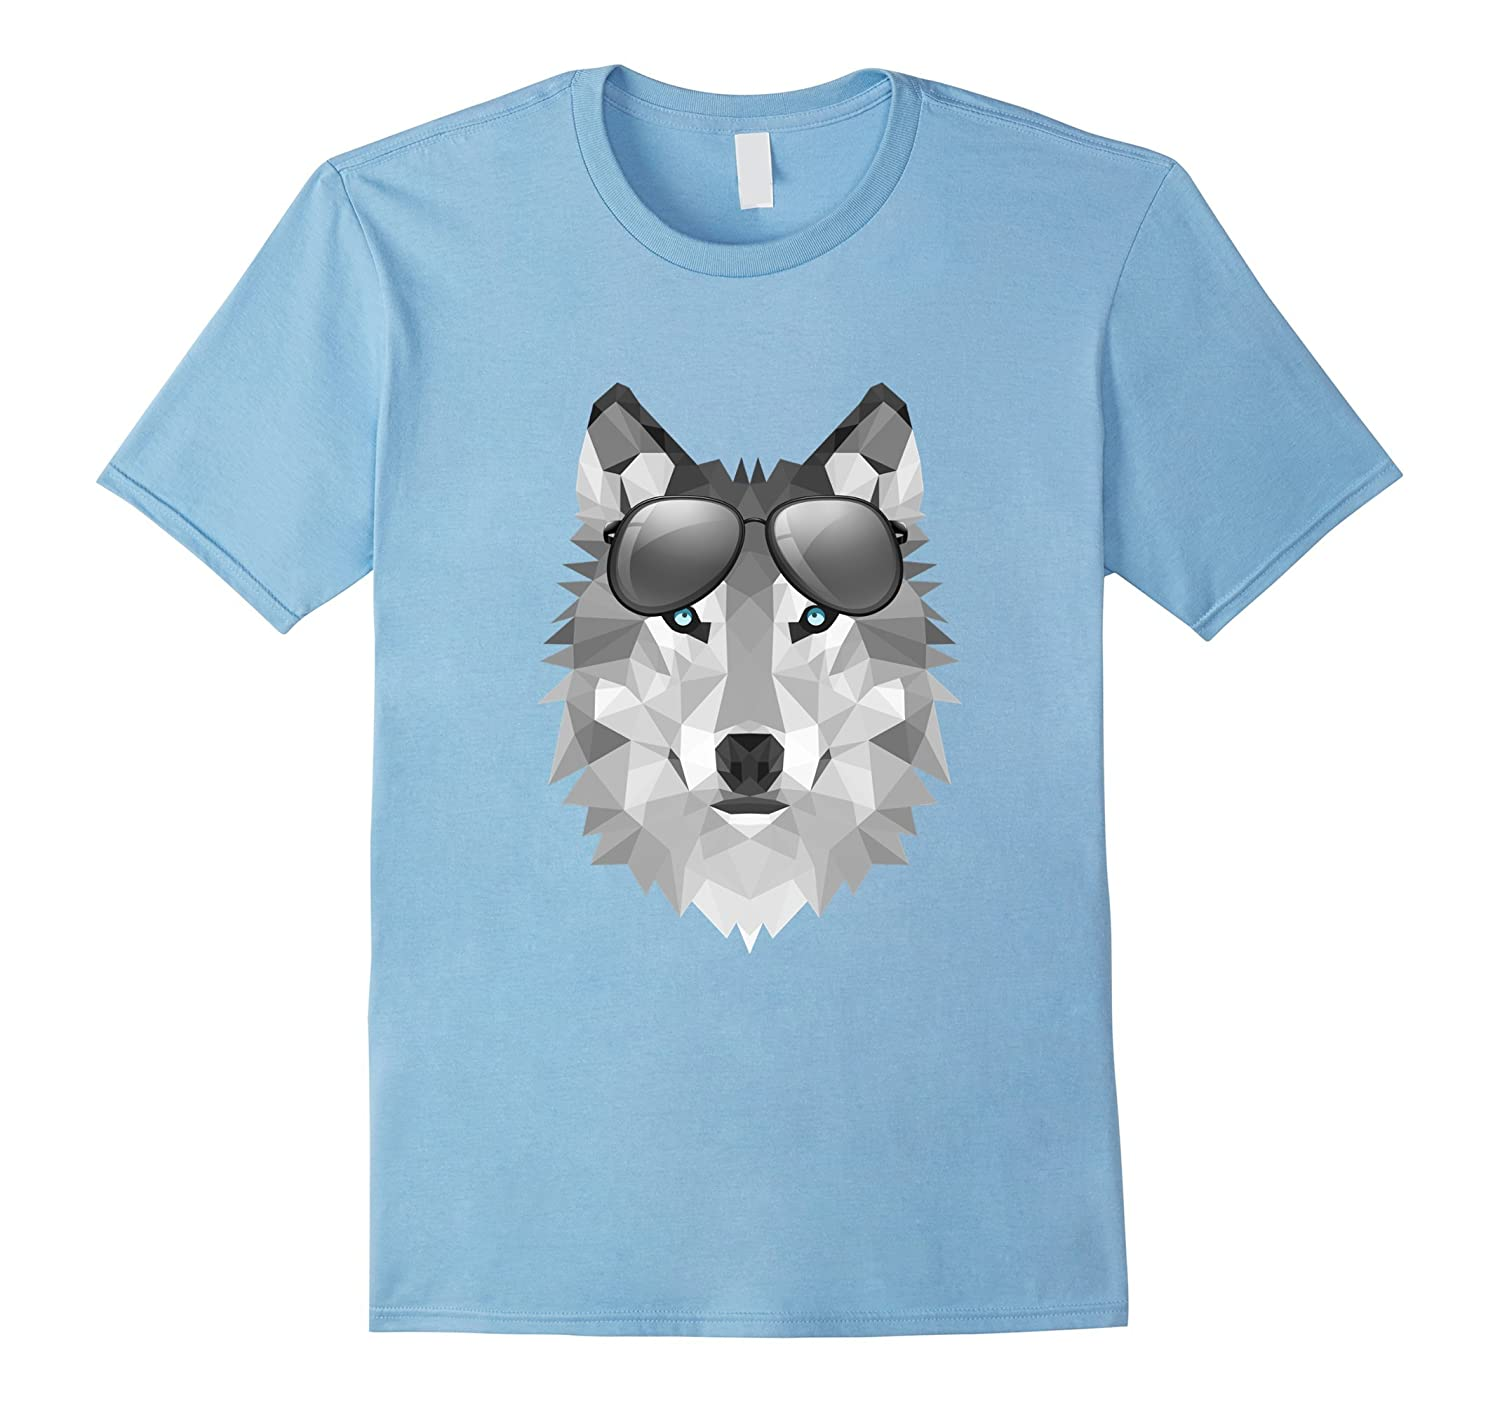 Cool wolf T-Shirt For Men Women and Kids by wolf king-BN